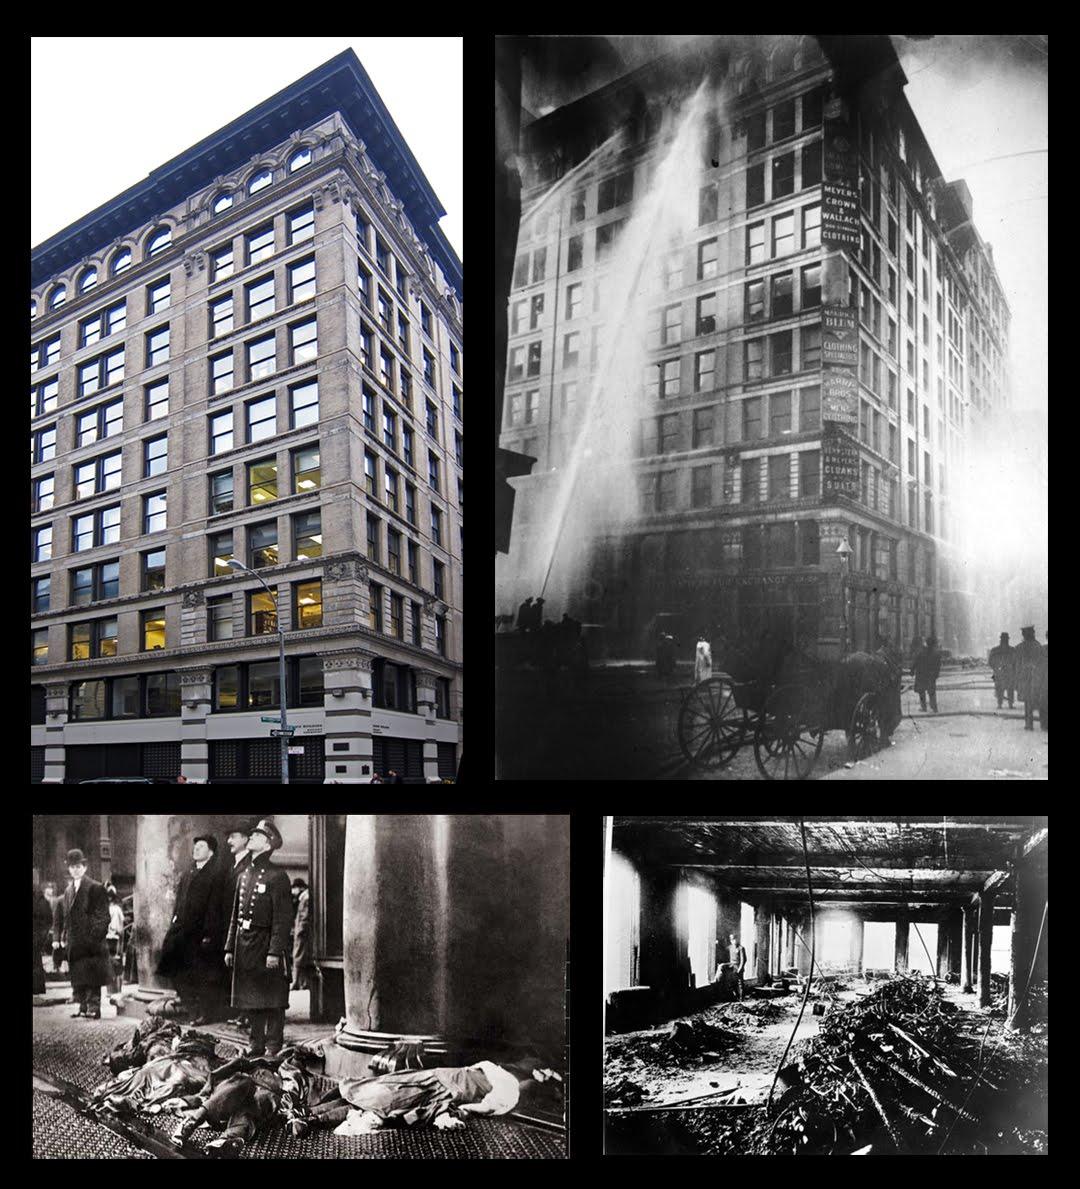 essay triangle shirtwaist fire The night after i read about the deadly triangle factory fire of march 25, 1911,   read fire, amy kolen's essay that appeared in best american essays 2002.